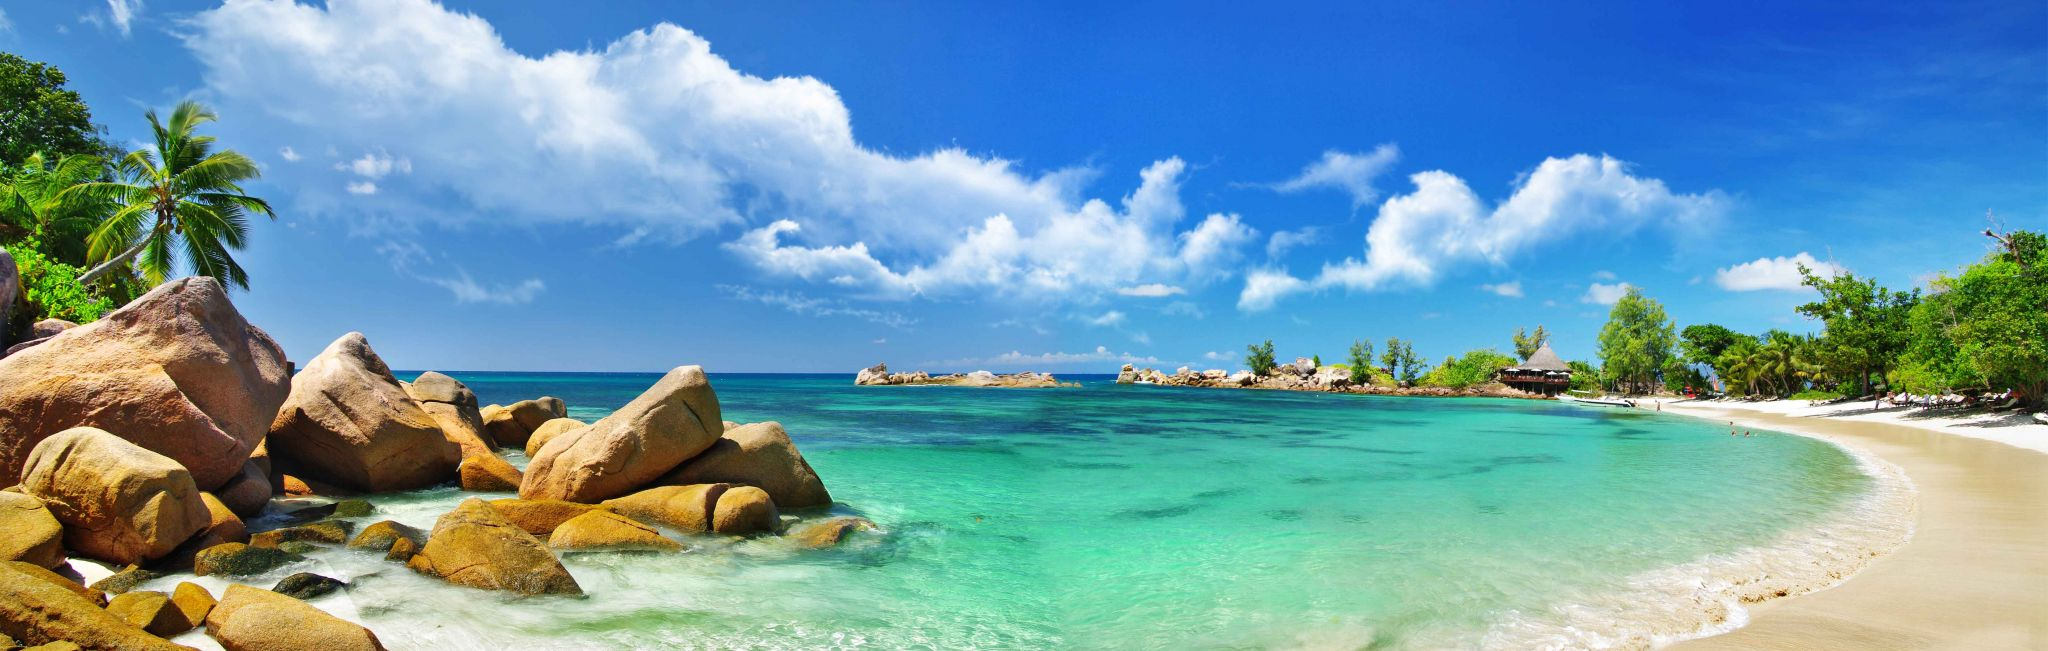 Luxury Seychelles Vacation Travel Amp Tours Seychelles